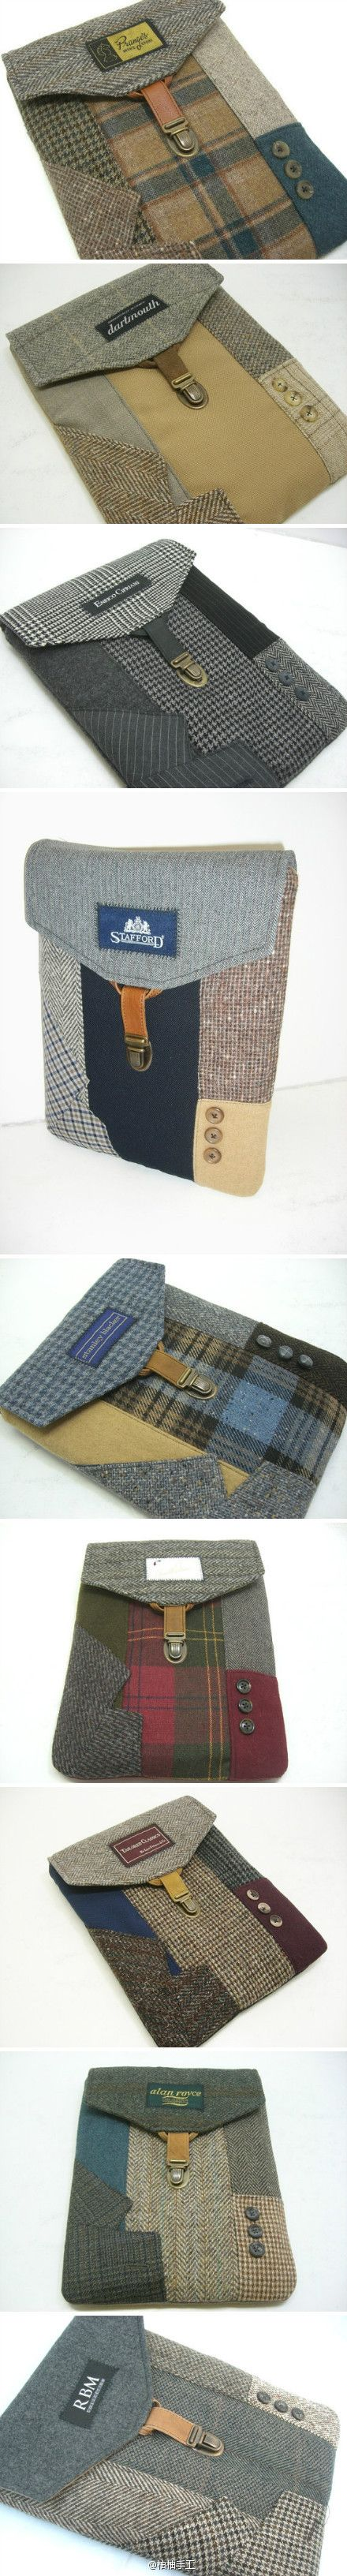 Suit plaids ipad cases .. think made in china. ...nice idea & textile use for old or thrift shop jackets